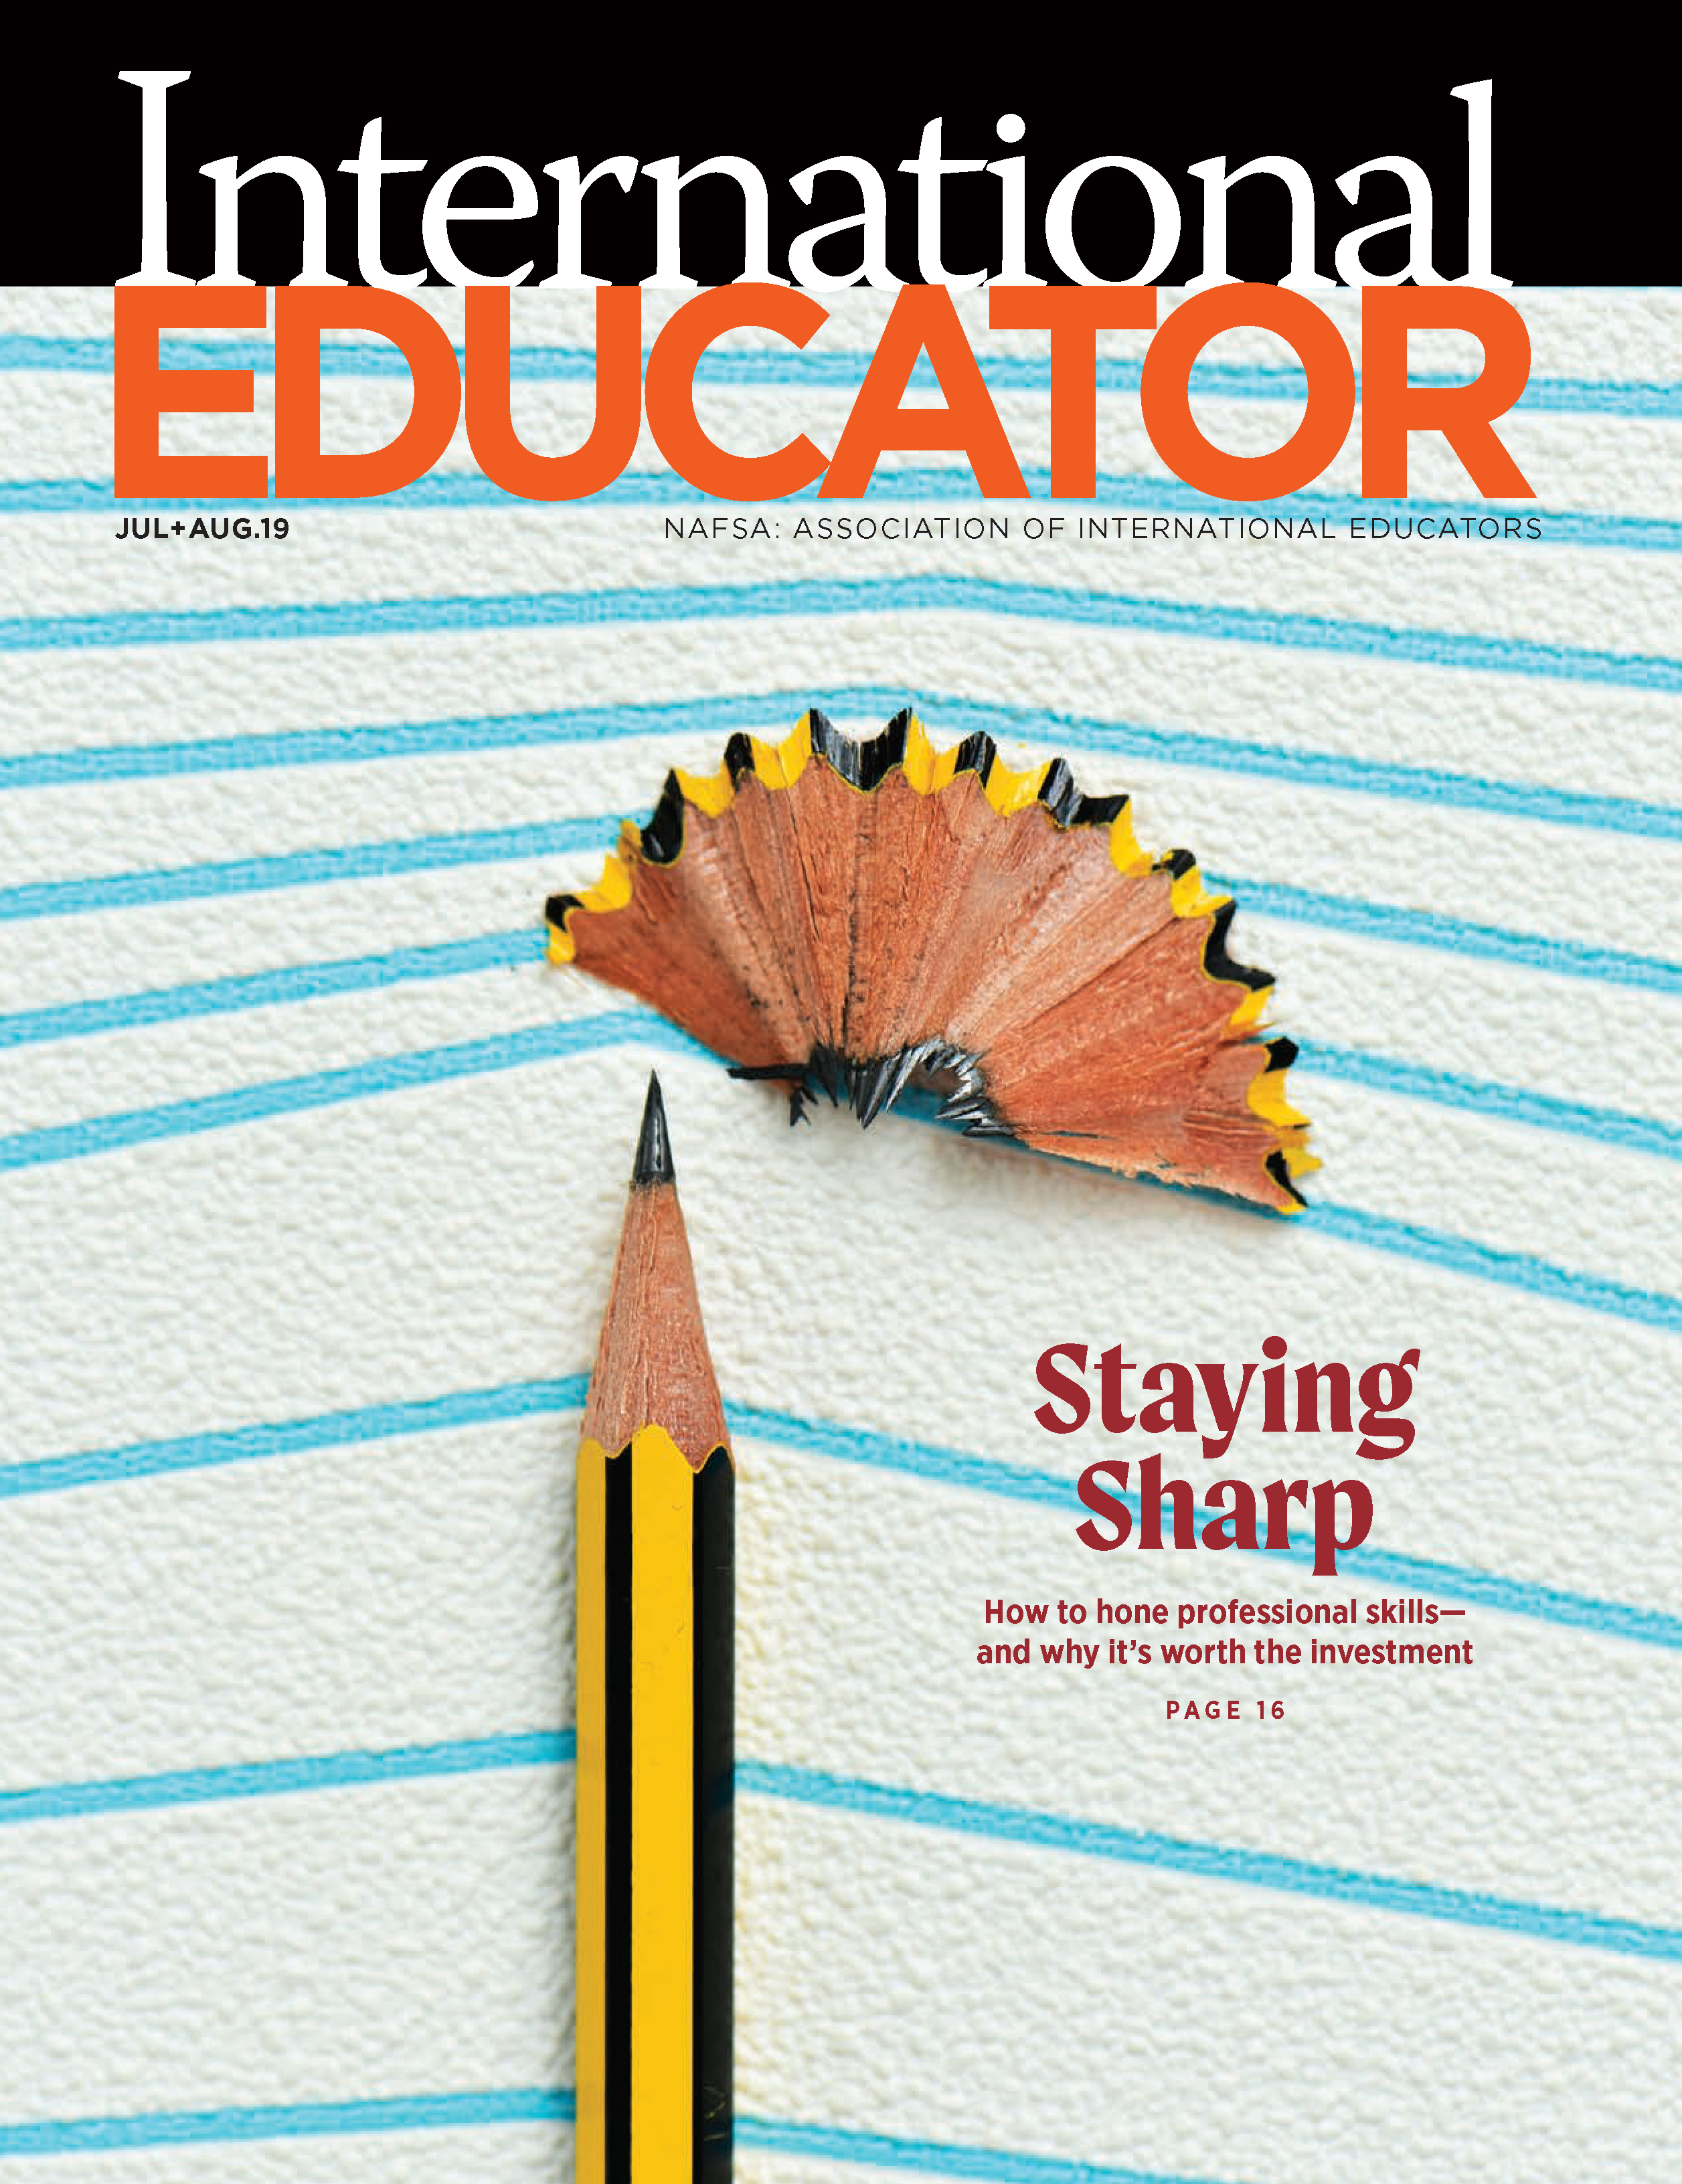 International Educator July August 2019